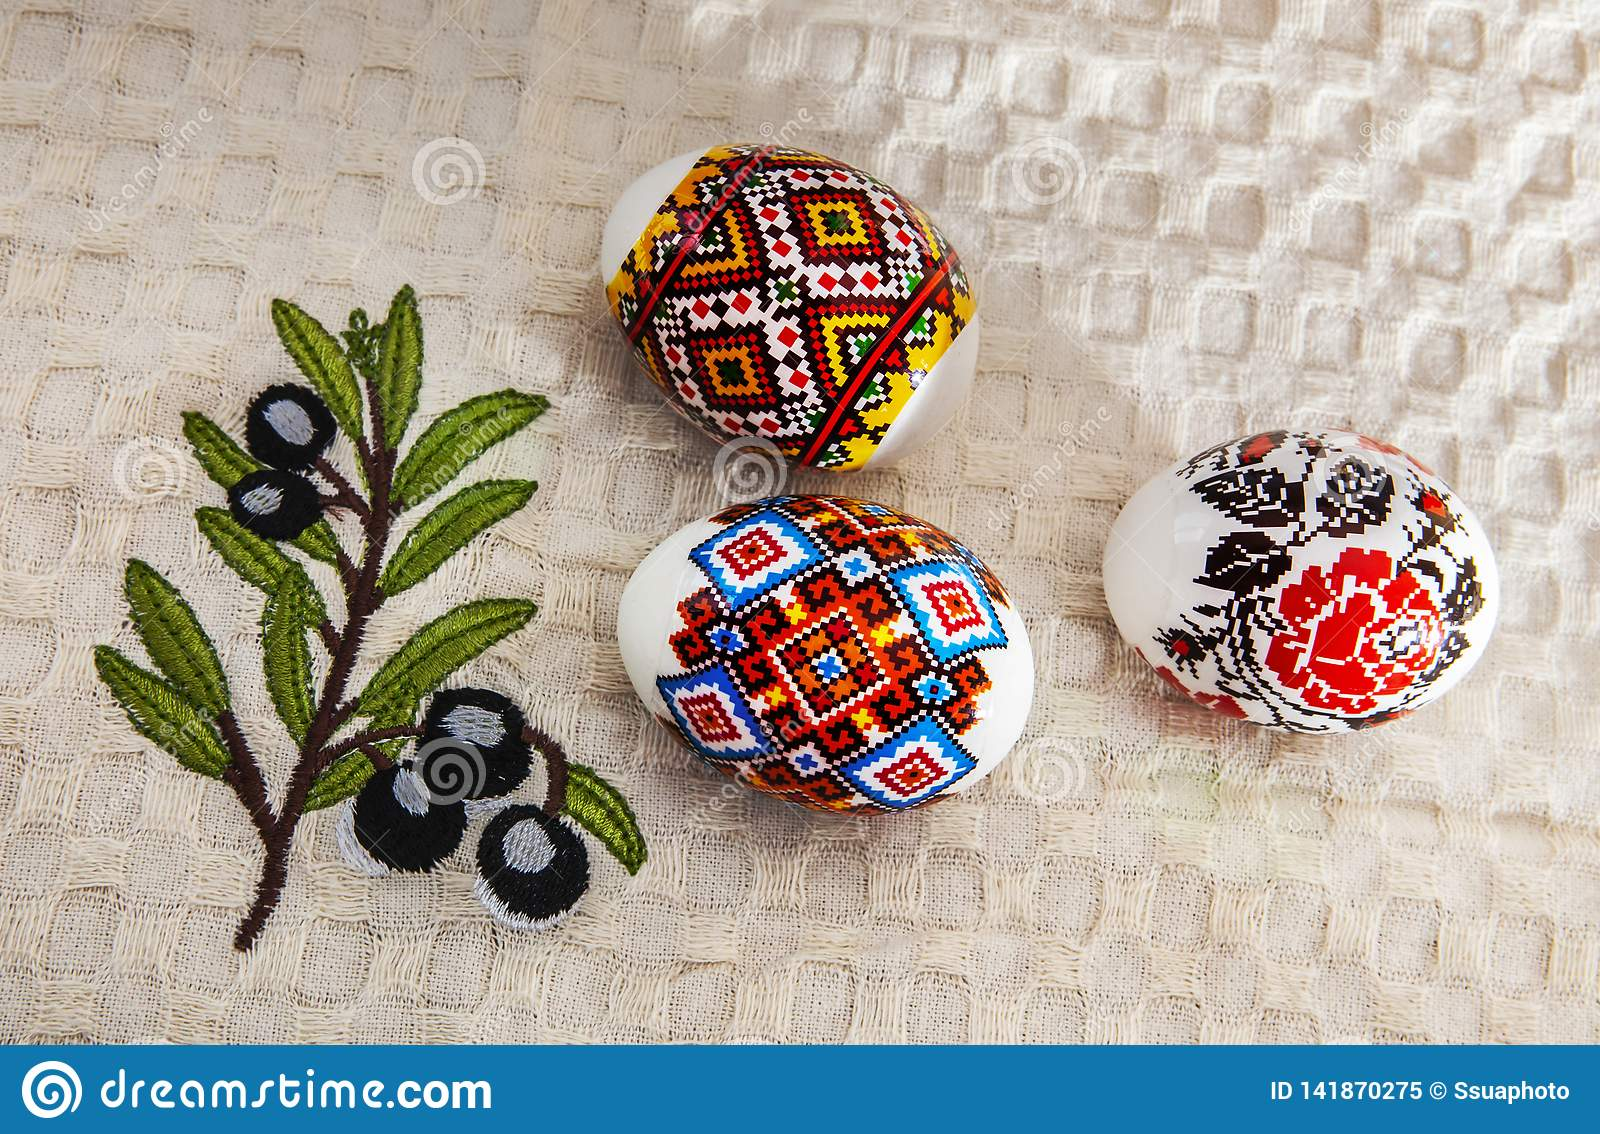 Colorful Easter Eggs on White Towel